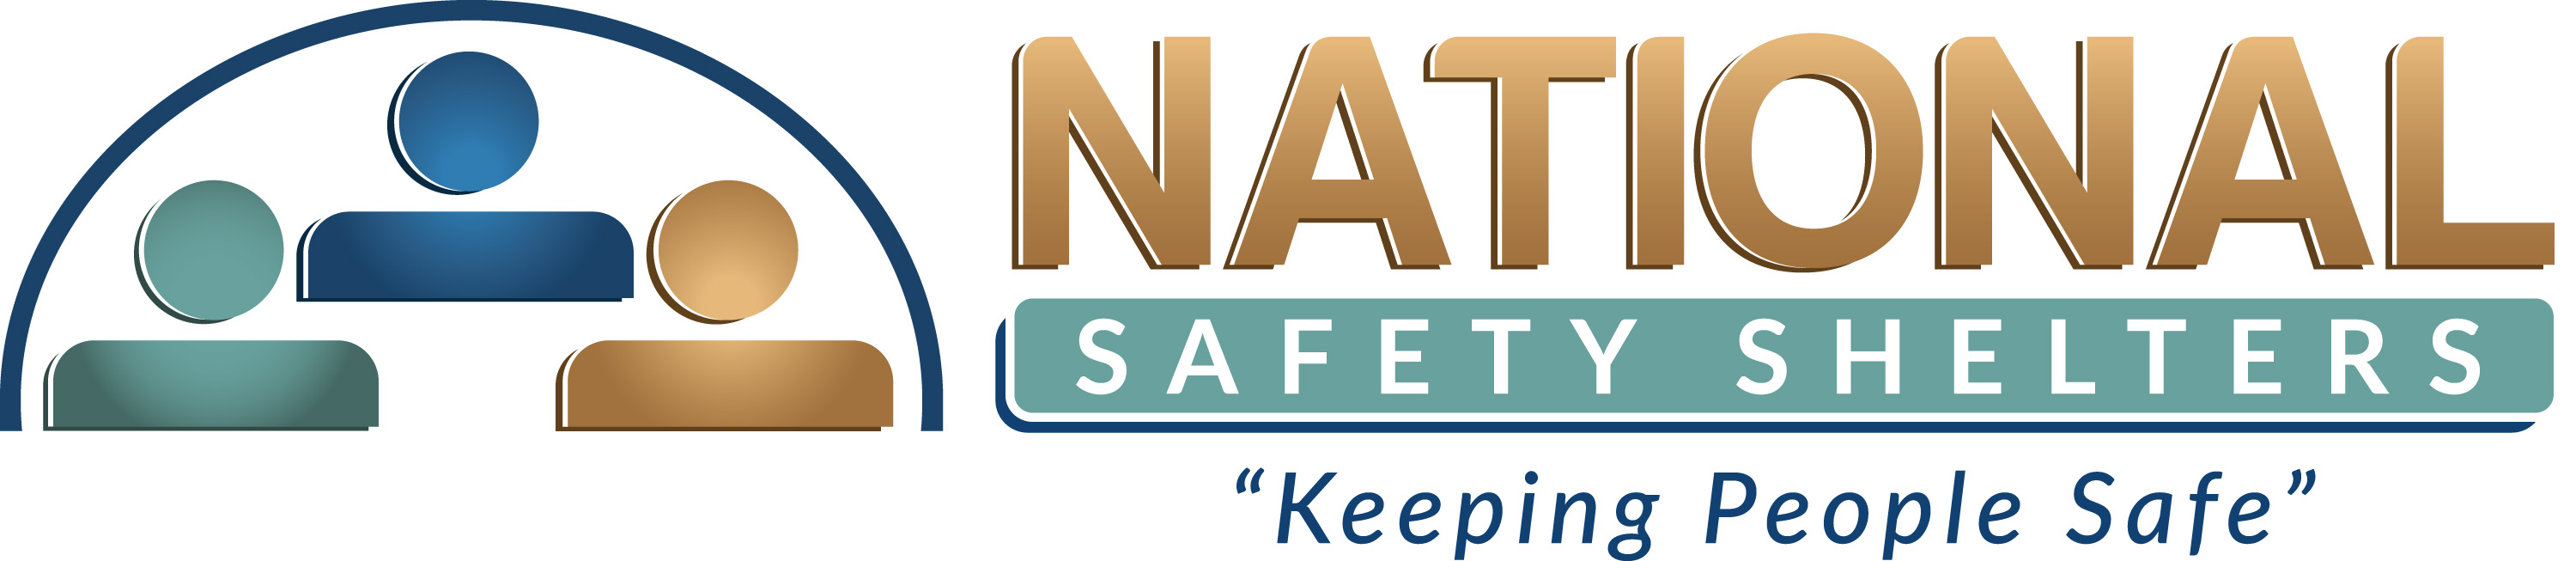 National Safety Shelters